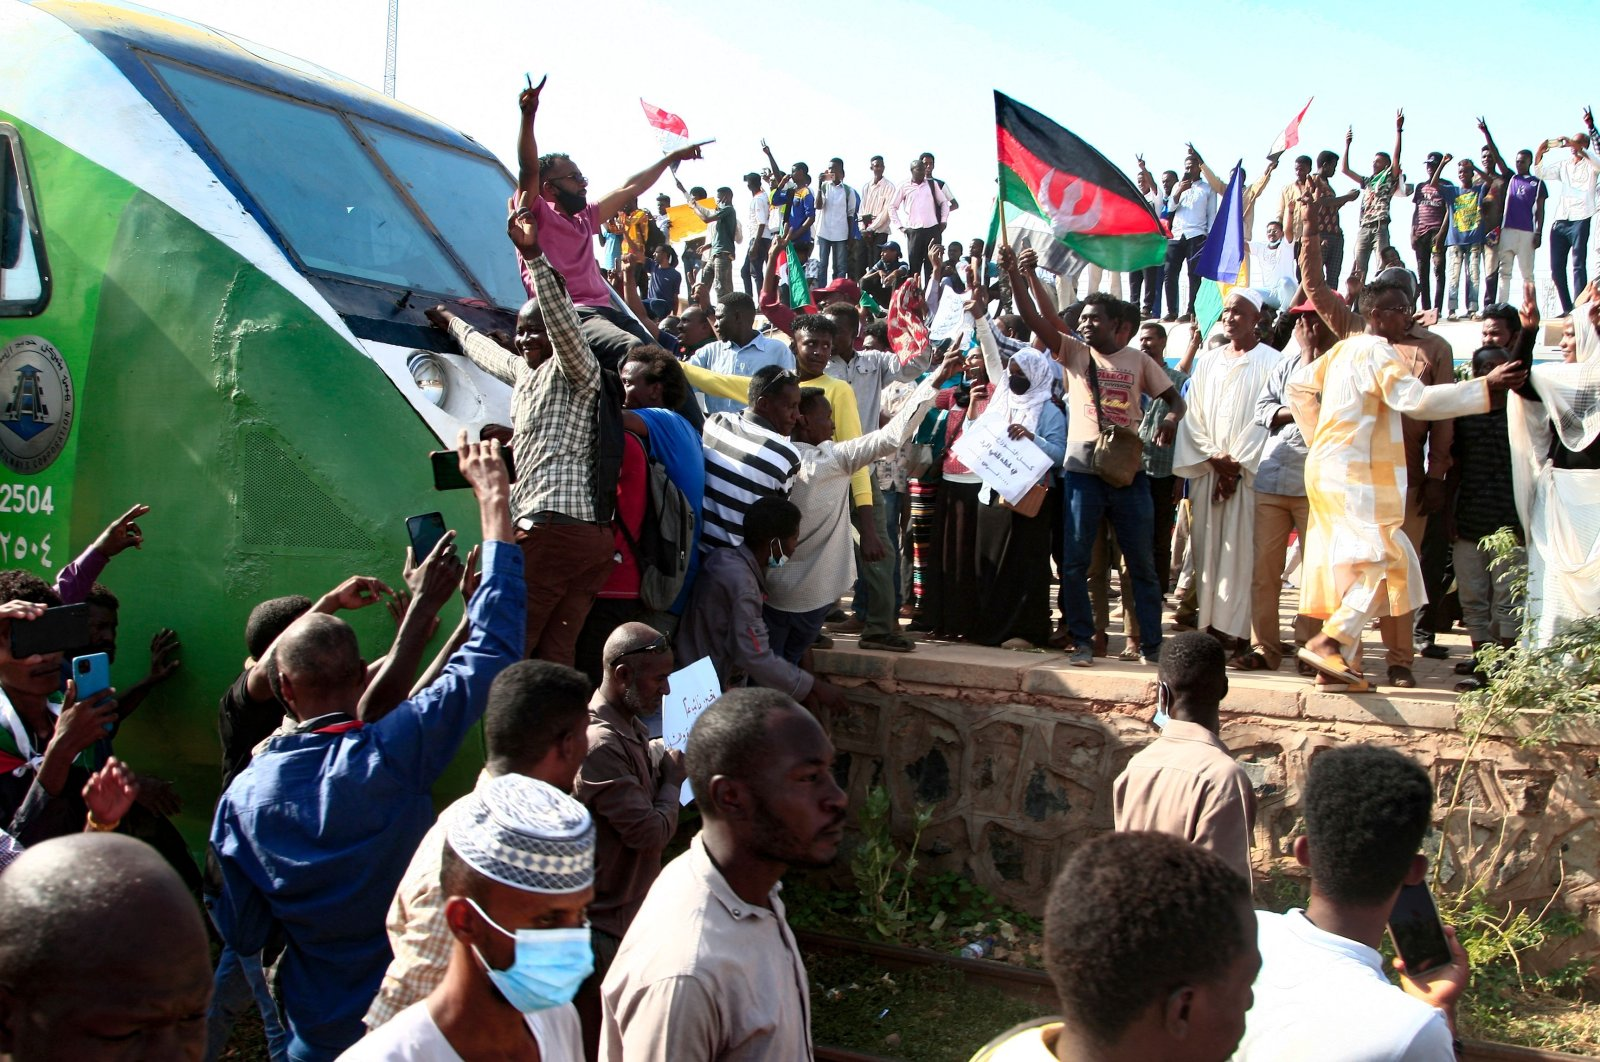 Sudanese protesters cheer as they greet fellow demonstrators upon their arrival on a train from Madani, the capital of Sudan's east-central al-Jazirah state, to join a rally in support of a civilian-led transition to democracy, Sept. 30, 2021. (AFP Photo)